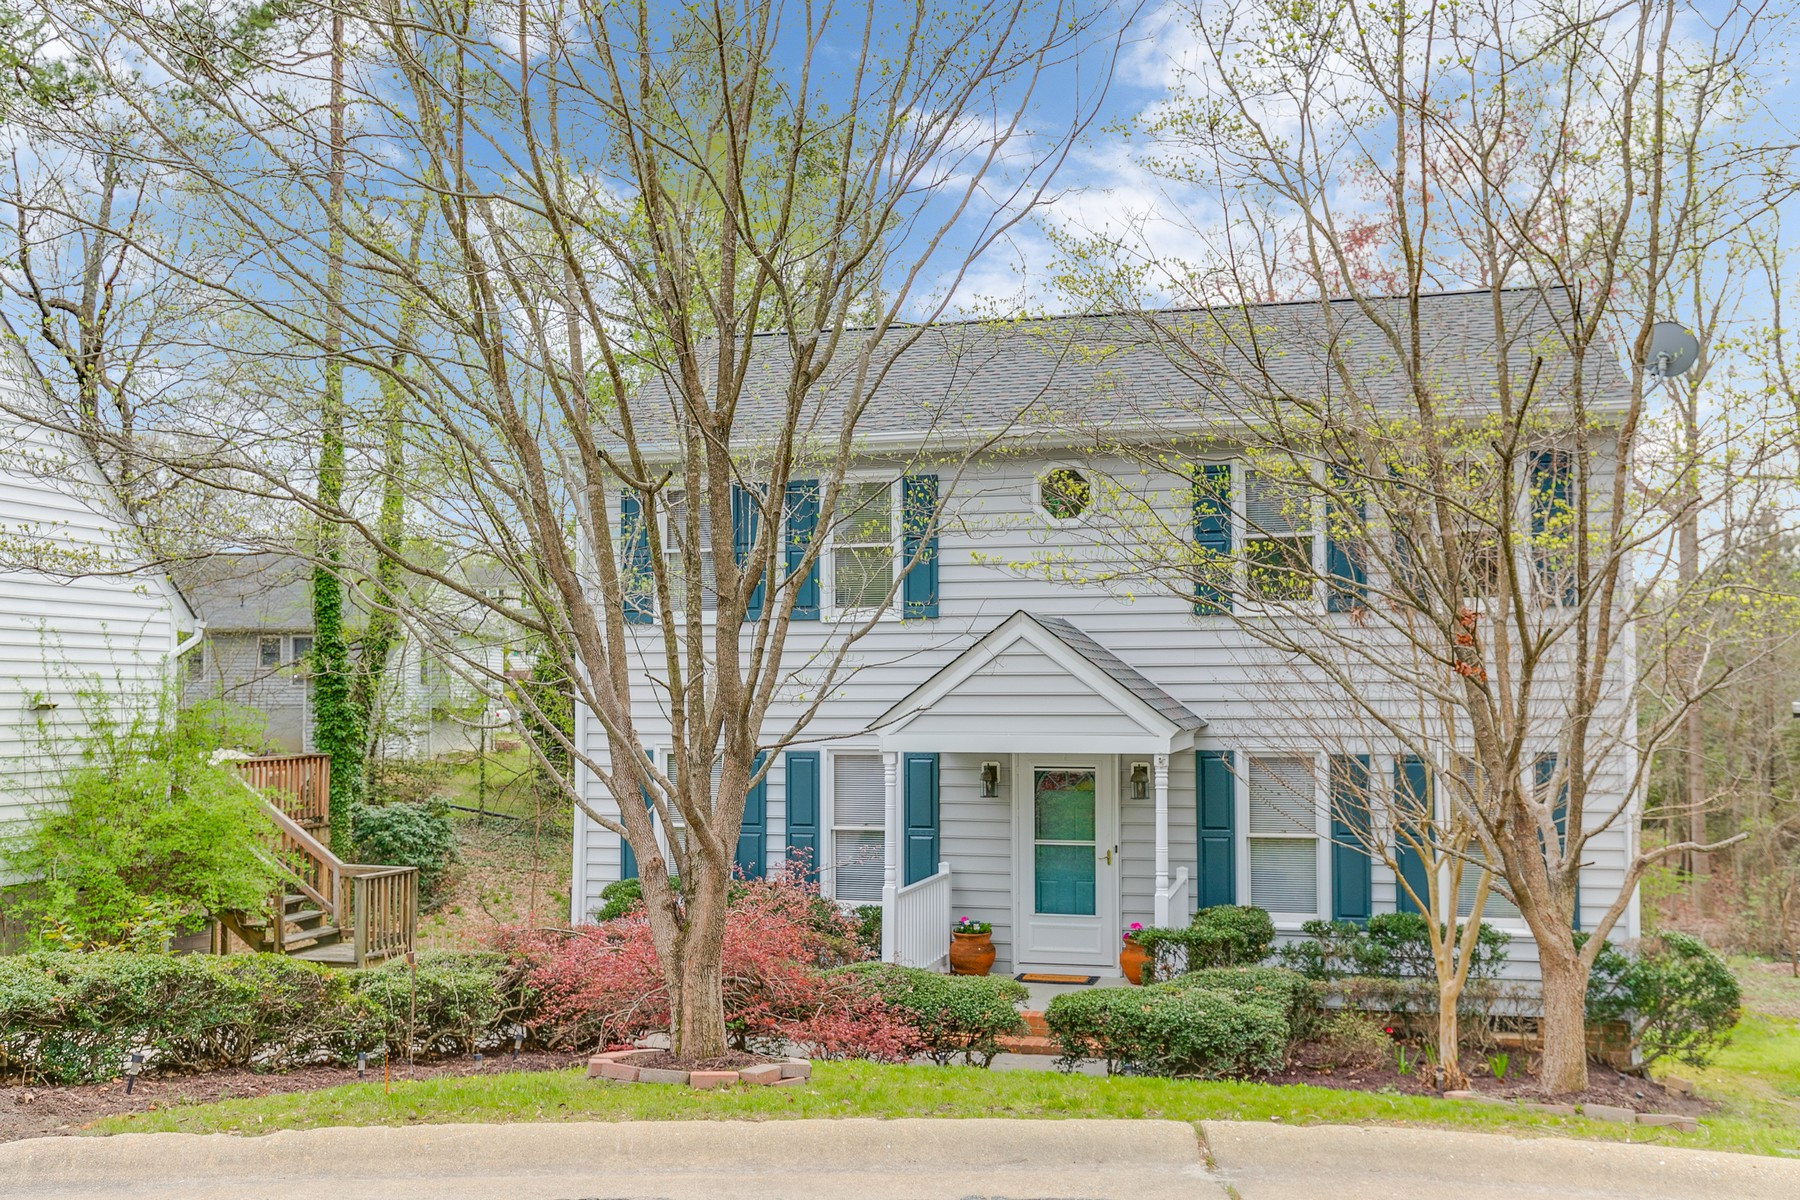 Single Family Home for Sale at 6169 Stockade Drive, Mechanicsville 6169 Stockade Dr Mechanicsville, Virginia 23111 United States